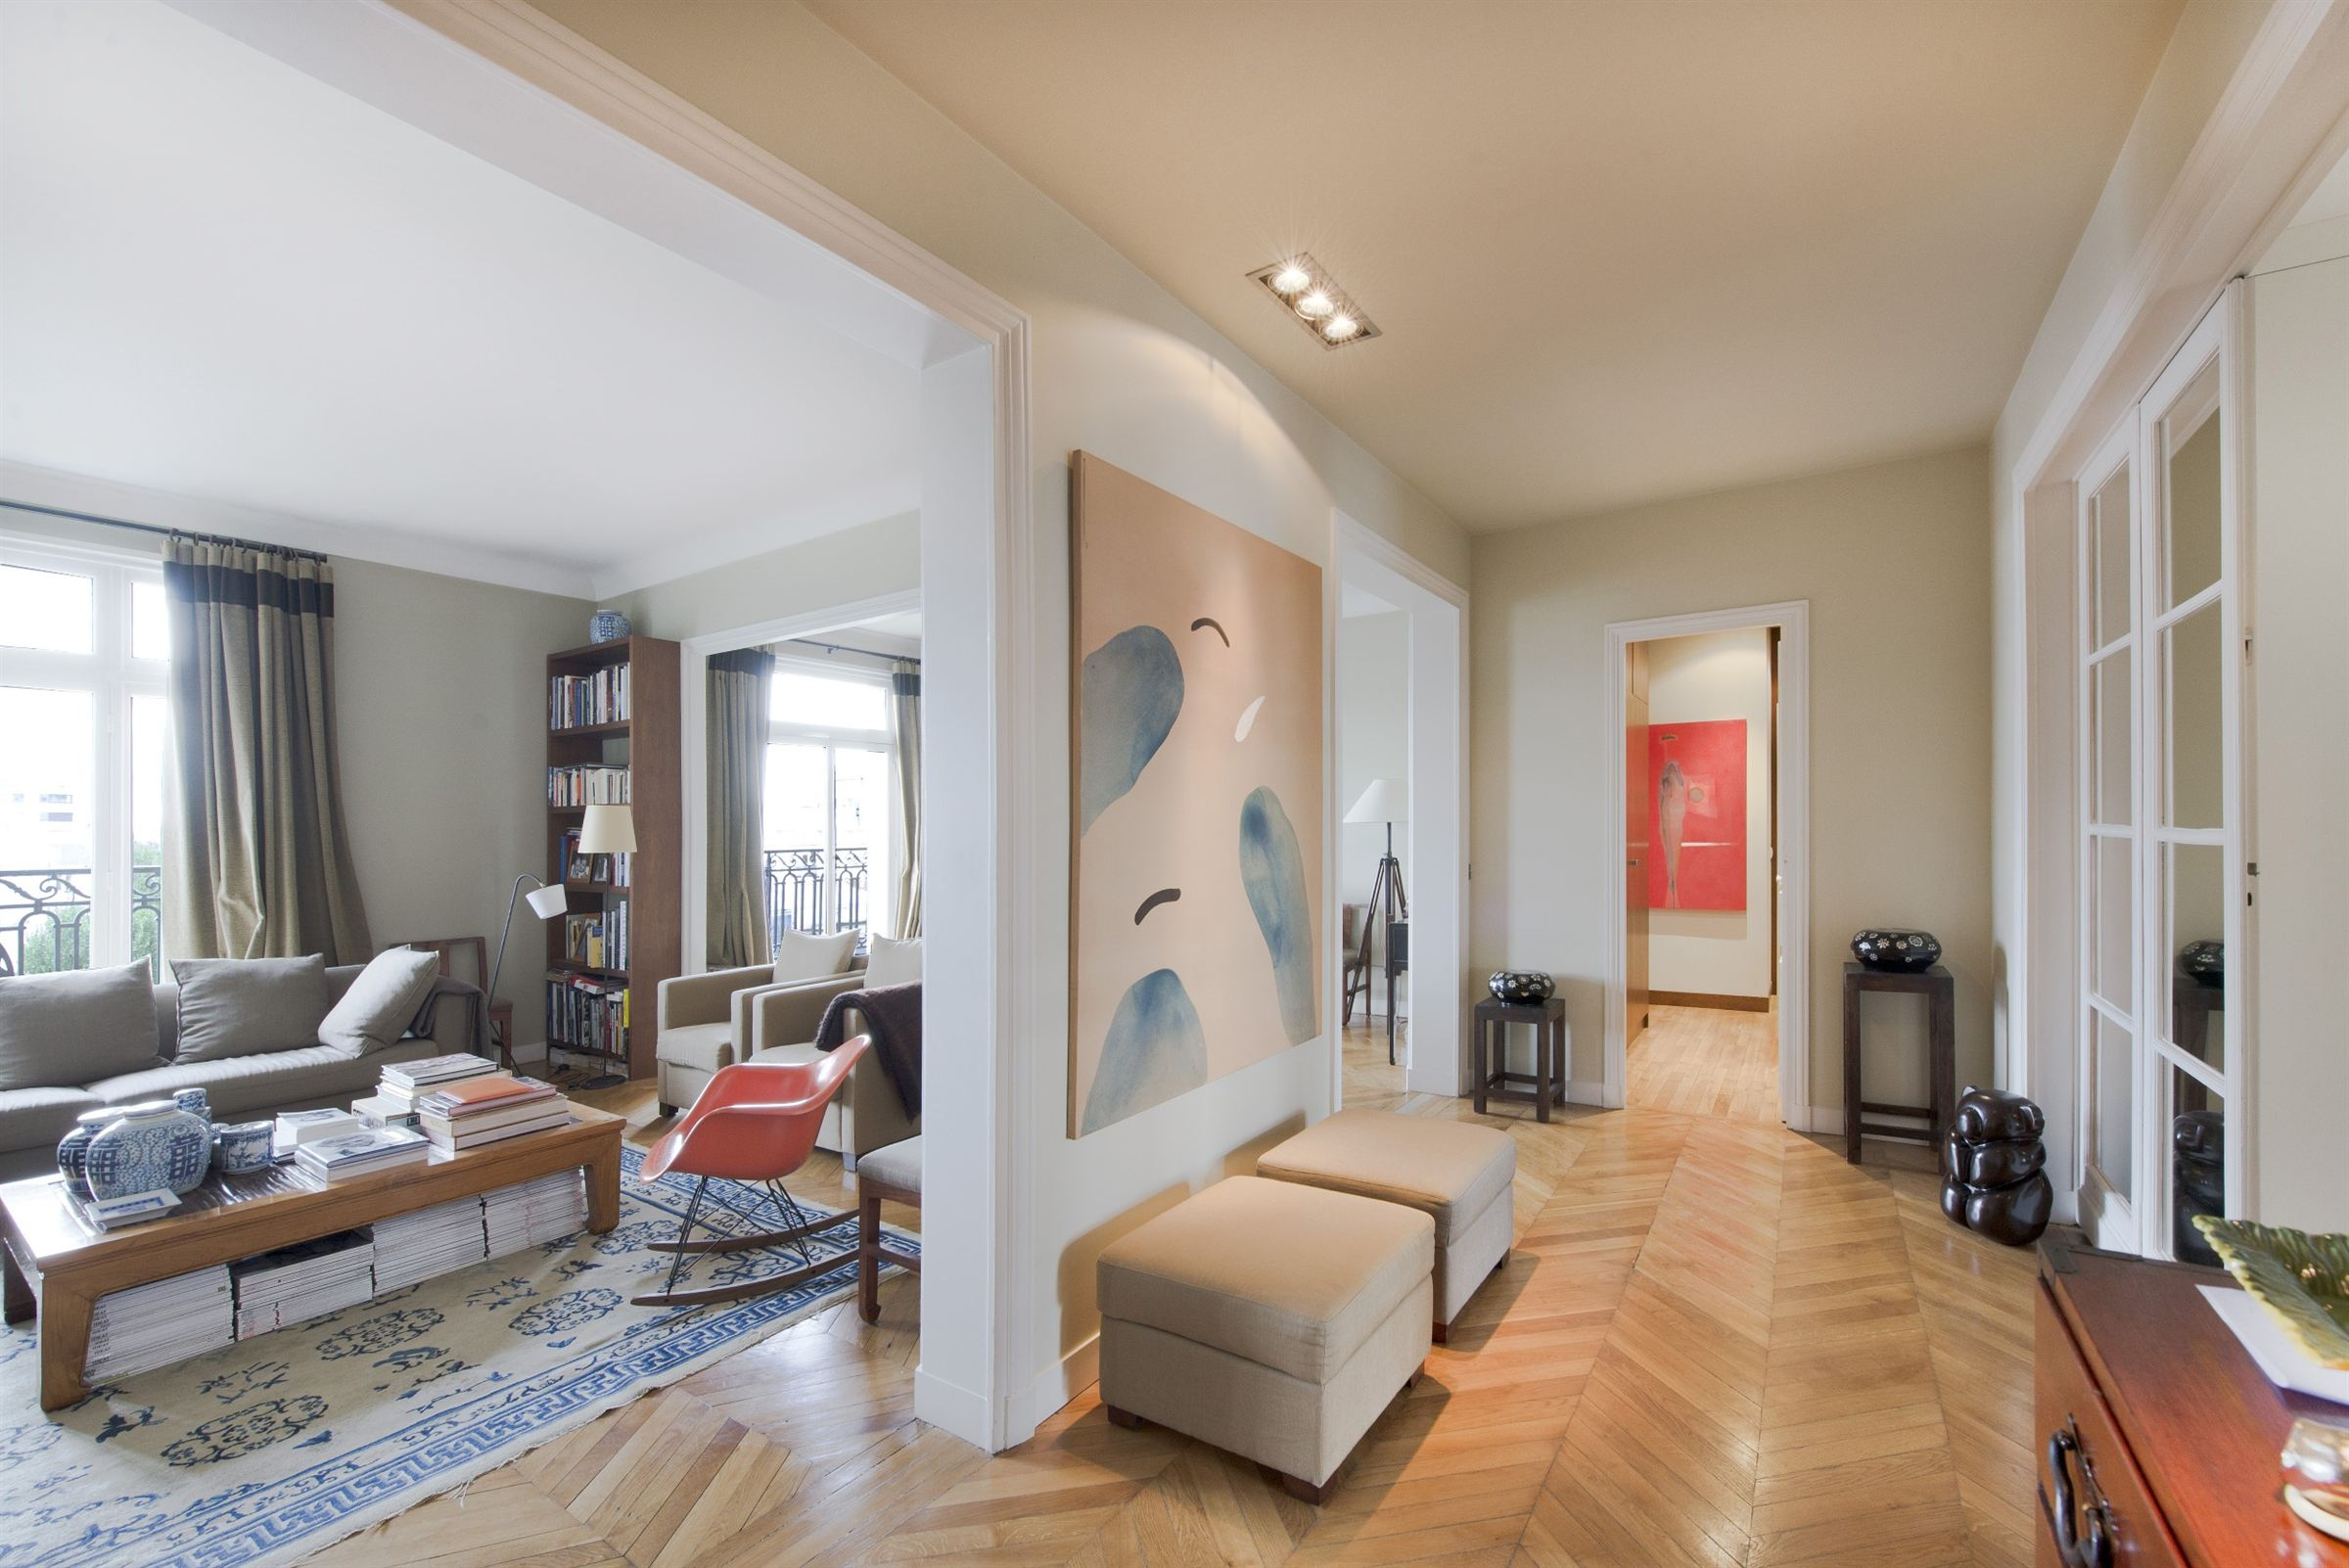 Квартира для того Продажа на Paris 4 - Marais. A 192 sq.m apartment, bright and quiet Paris, Париж 75004 Франция